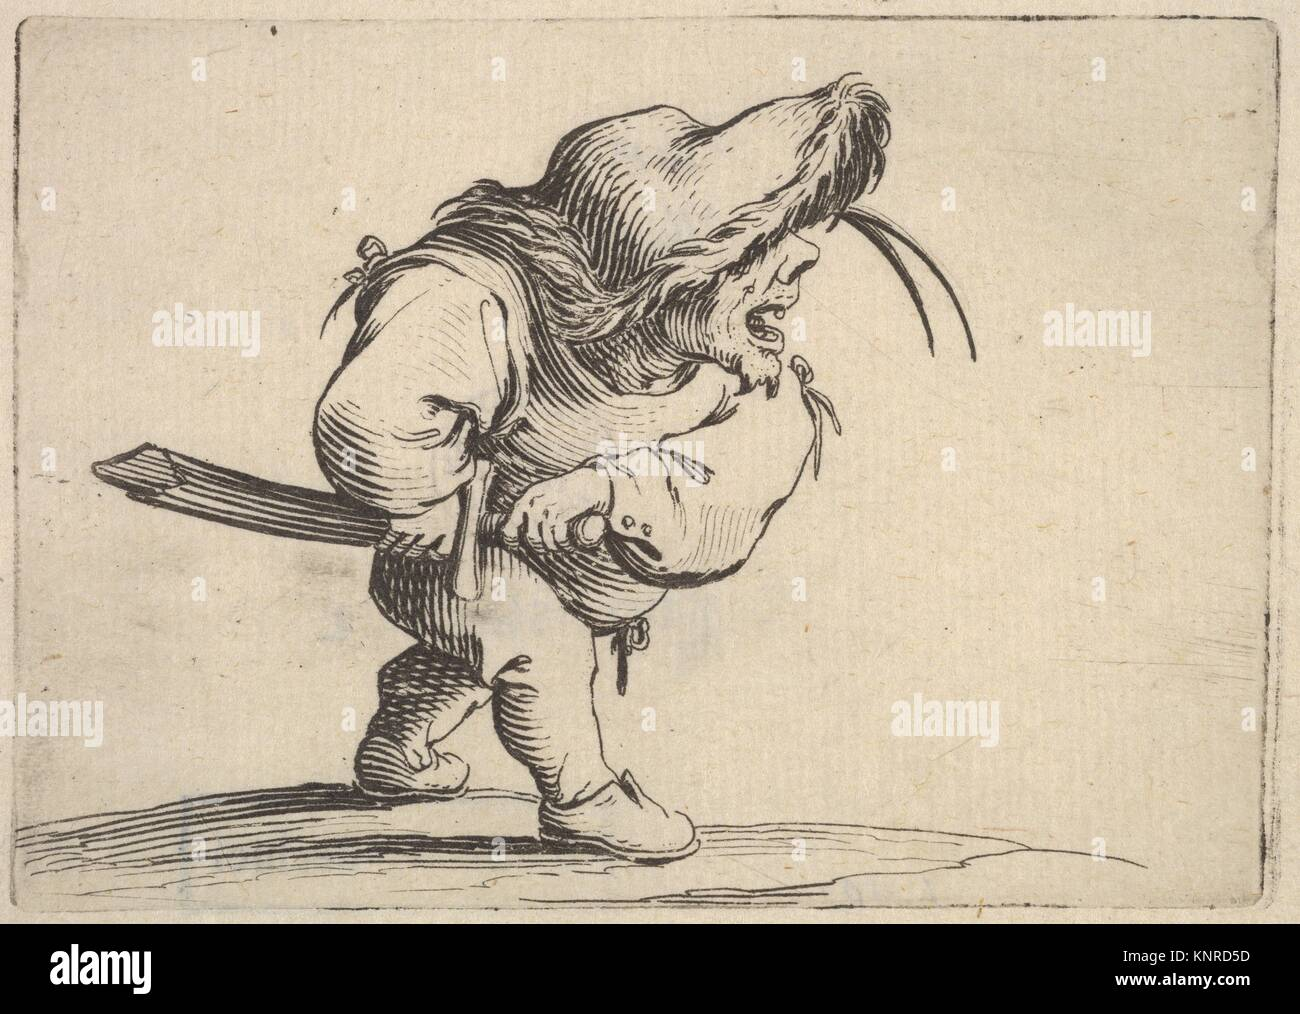 Small male figure stopping to draw his sword, in profile view with open mouth and left foot positioned forward, - Stock Image